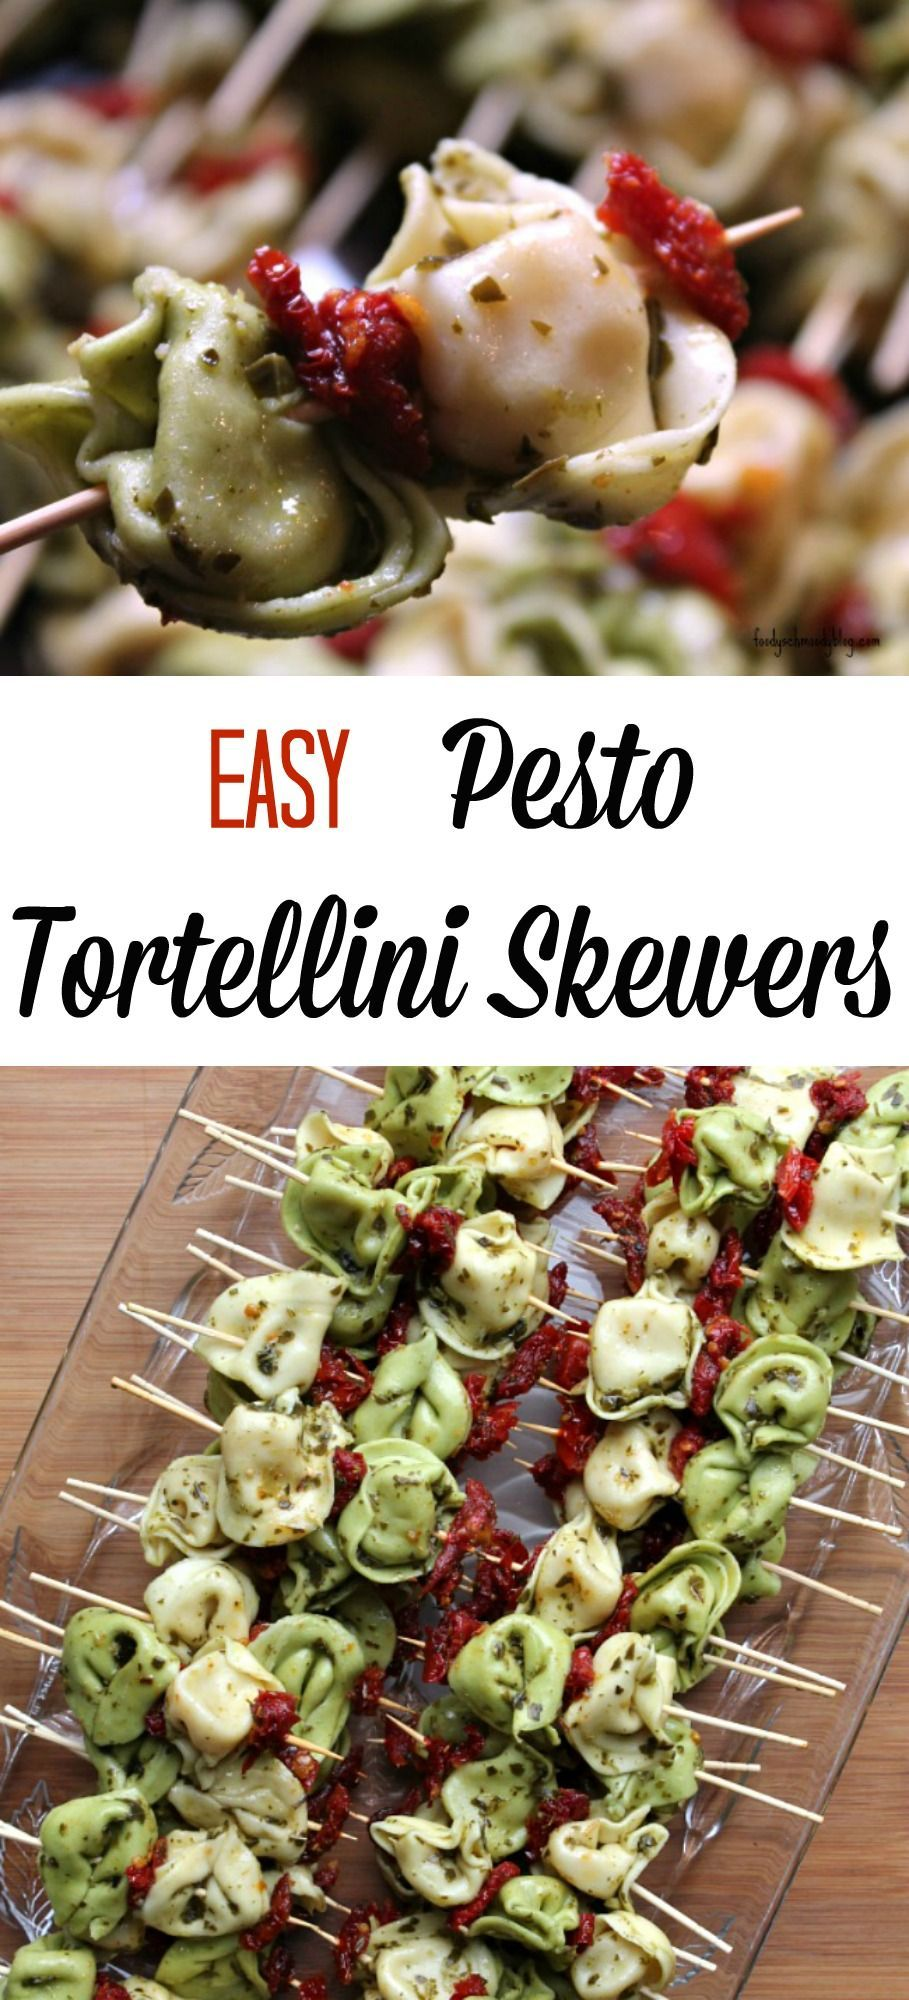 Easy Pesto Tortellini Skewers Everyone loves these easy, cheesy, Pepperoni Pizza Bombs! Made with Crescent roll dough, these easy and delicious pizza bites bake up quickly in the oven. Serve these pepperoni cheese pizza bombs at your next party and amaze your guests! #appetizersforparty